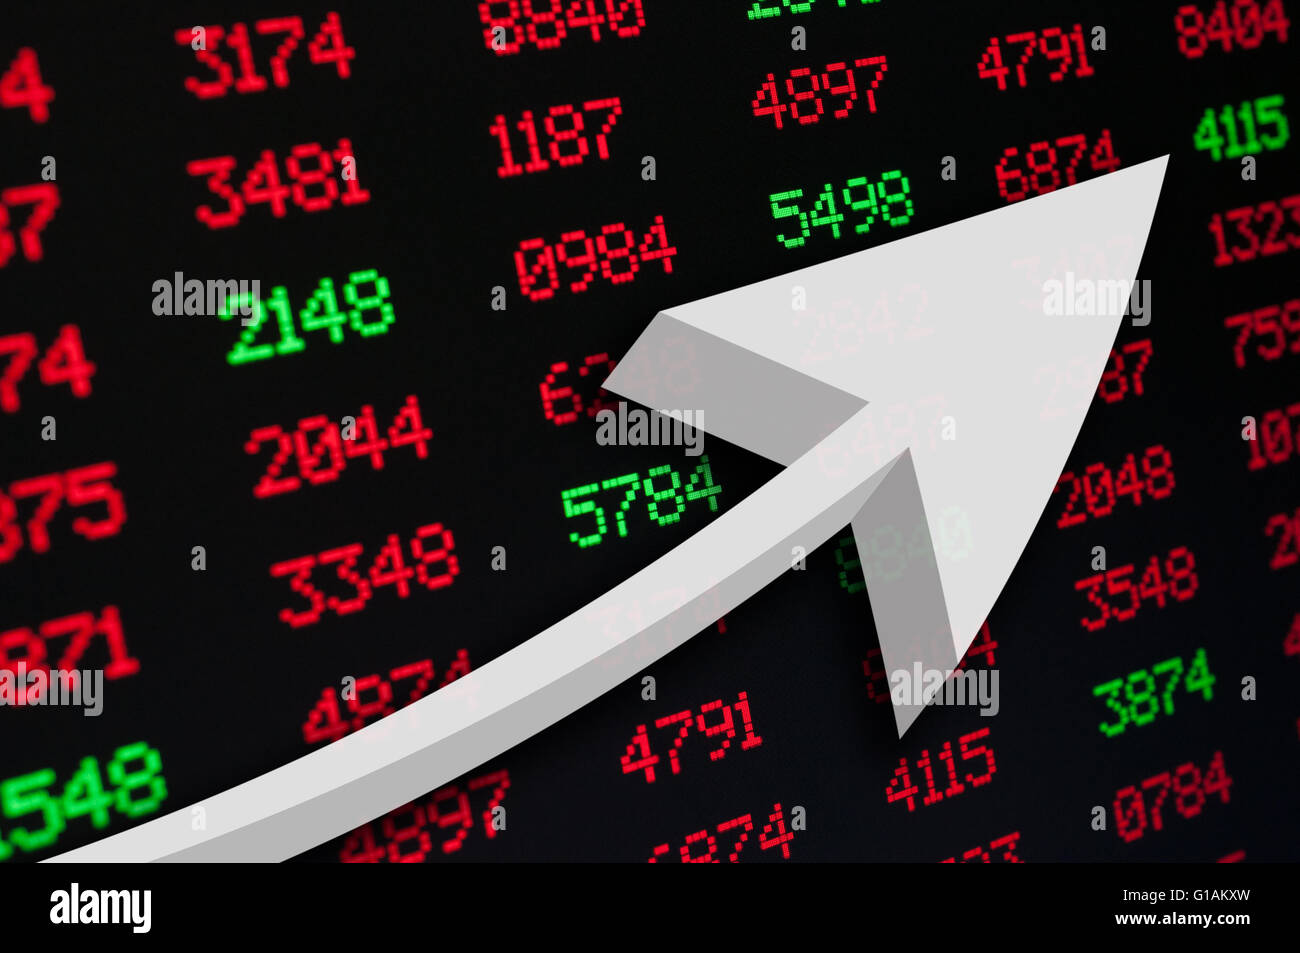 Stock Market - An Arrow on Background of Red and Green Figures - Stock Image